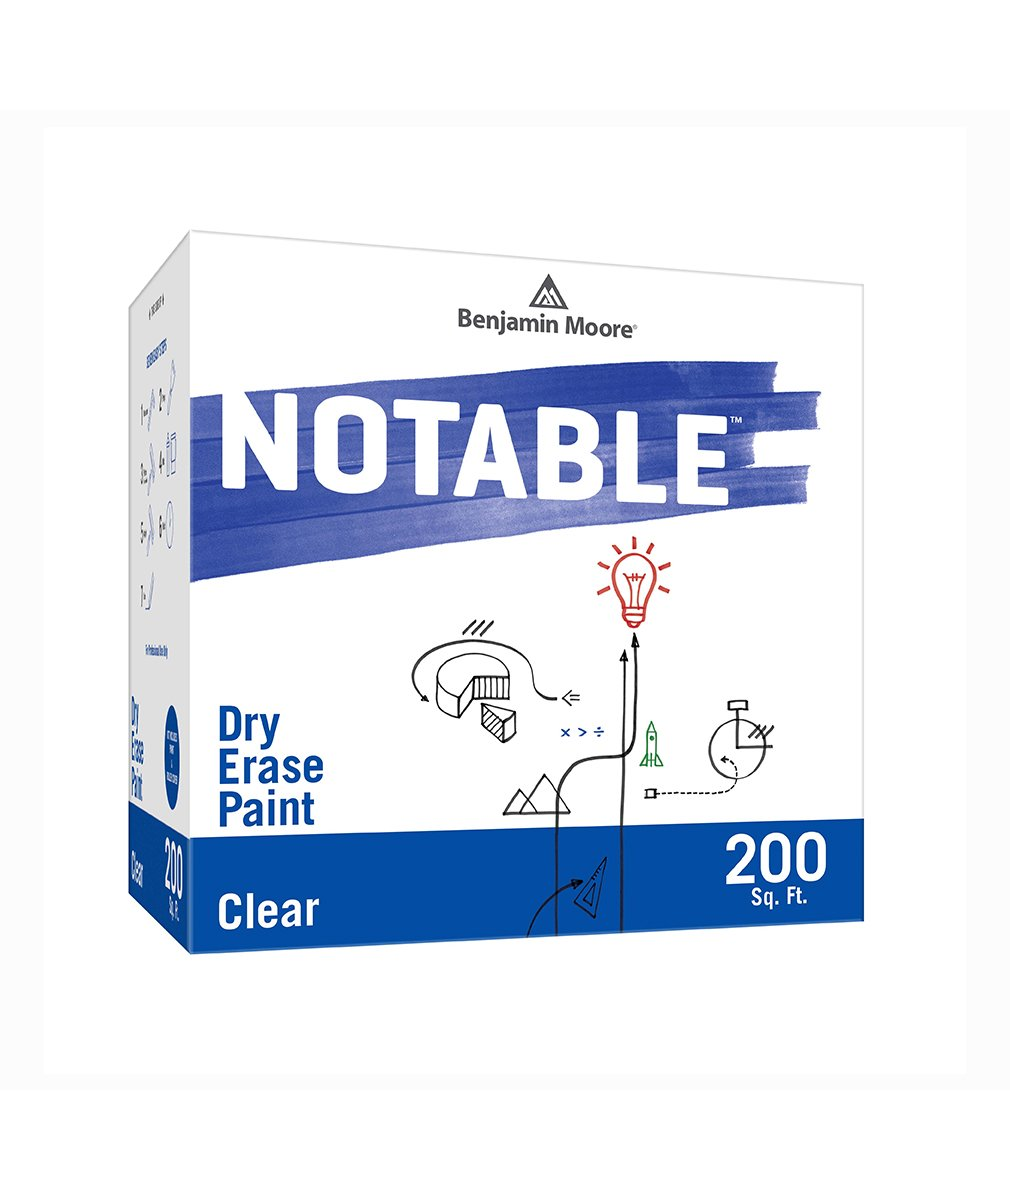 Benjamin Moore Notable Dry Erase Paint in Clear 200 sq. ft, available at JC Licht.